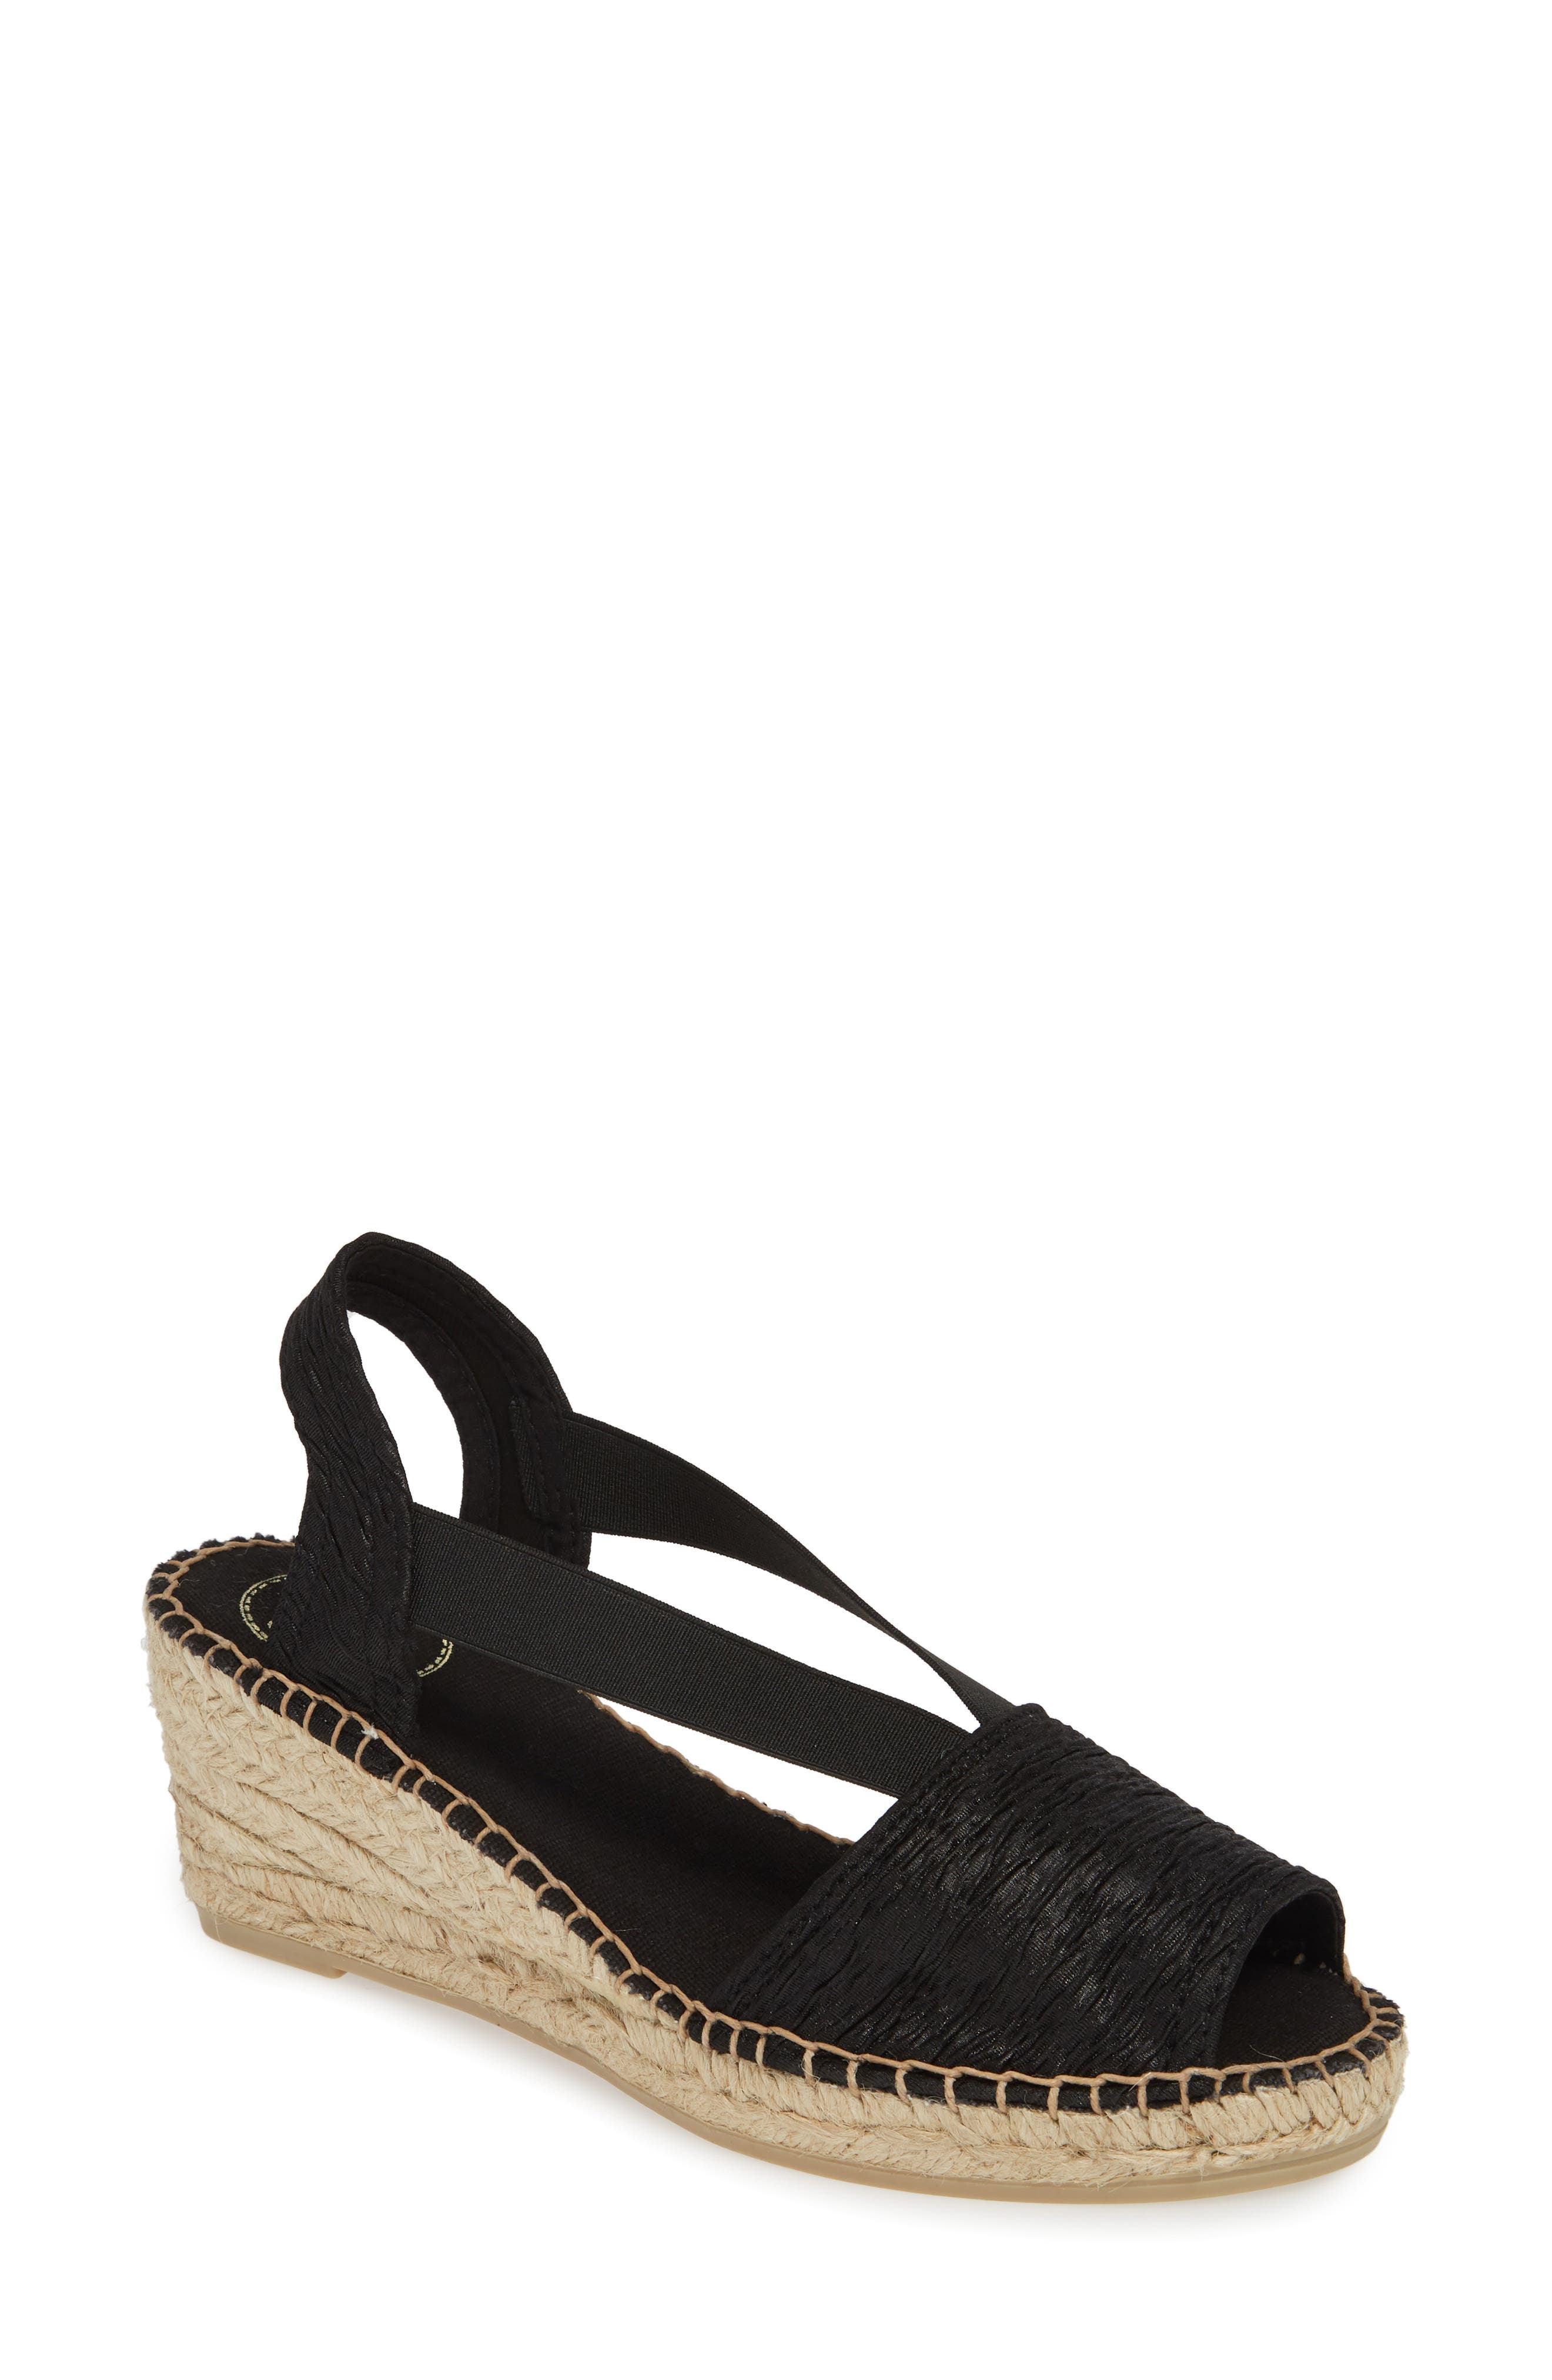 Get in the sun-chasing spirit in this espadrille-style sandal with stretch straps tethering the rustic woven upper and braided jute wrapping the wedge. Style Name: Toni Pons Taga Sandal (Women). Style Number: 5804129. Available in stores.